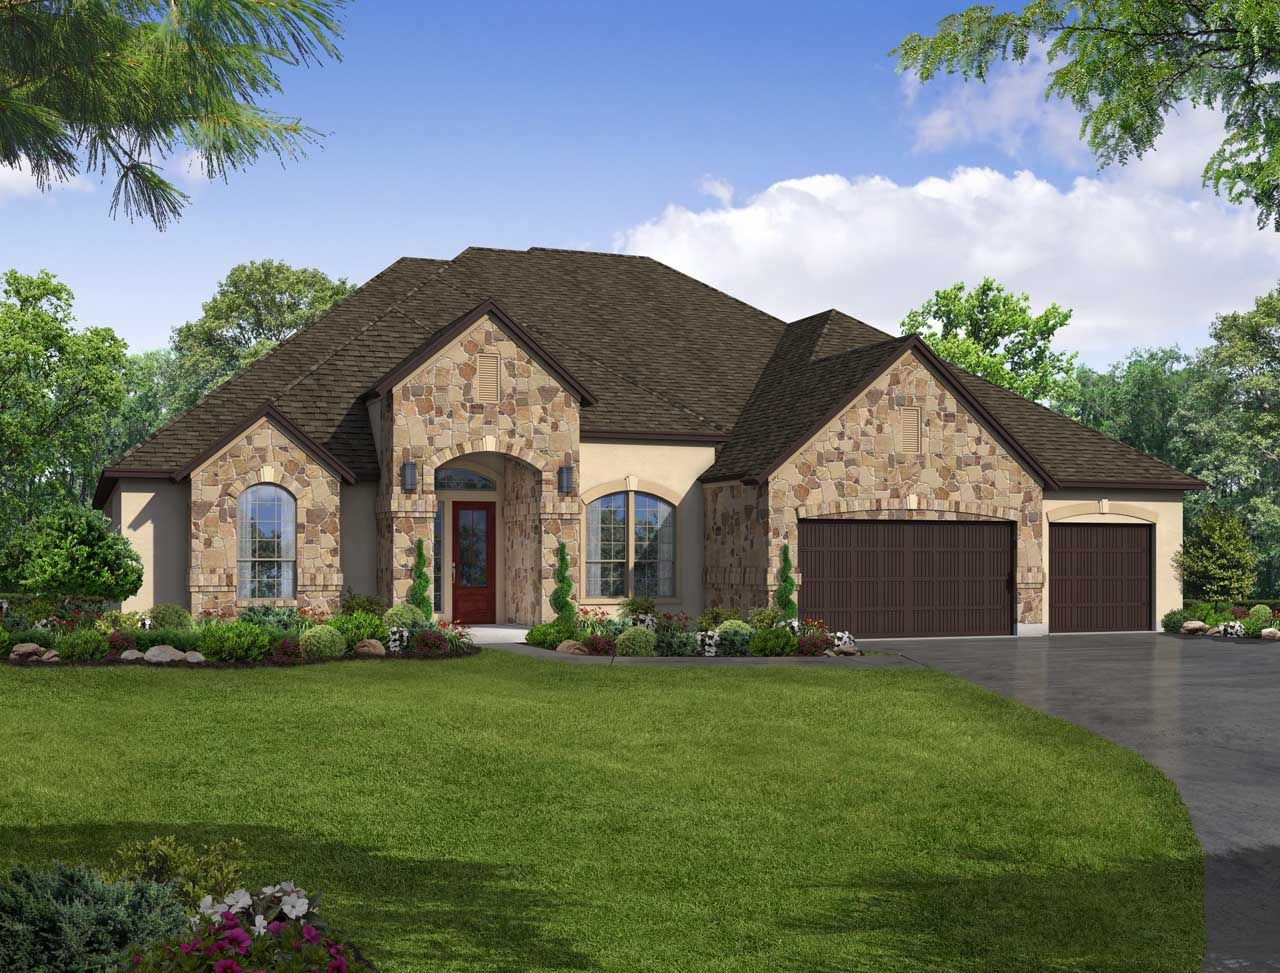 Single Family for Sale at Lakes Edge 70' & 80' - Plan 820m 2508 Ashley Worth Blvd Bee Cave, Texas 78738 United States